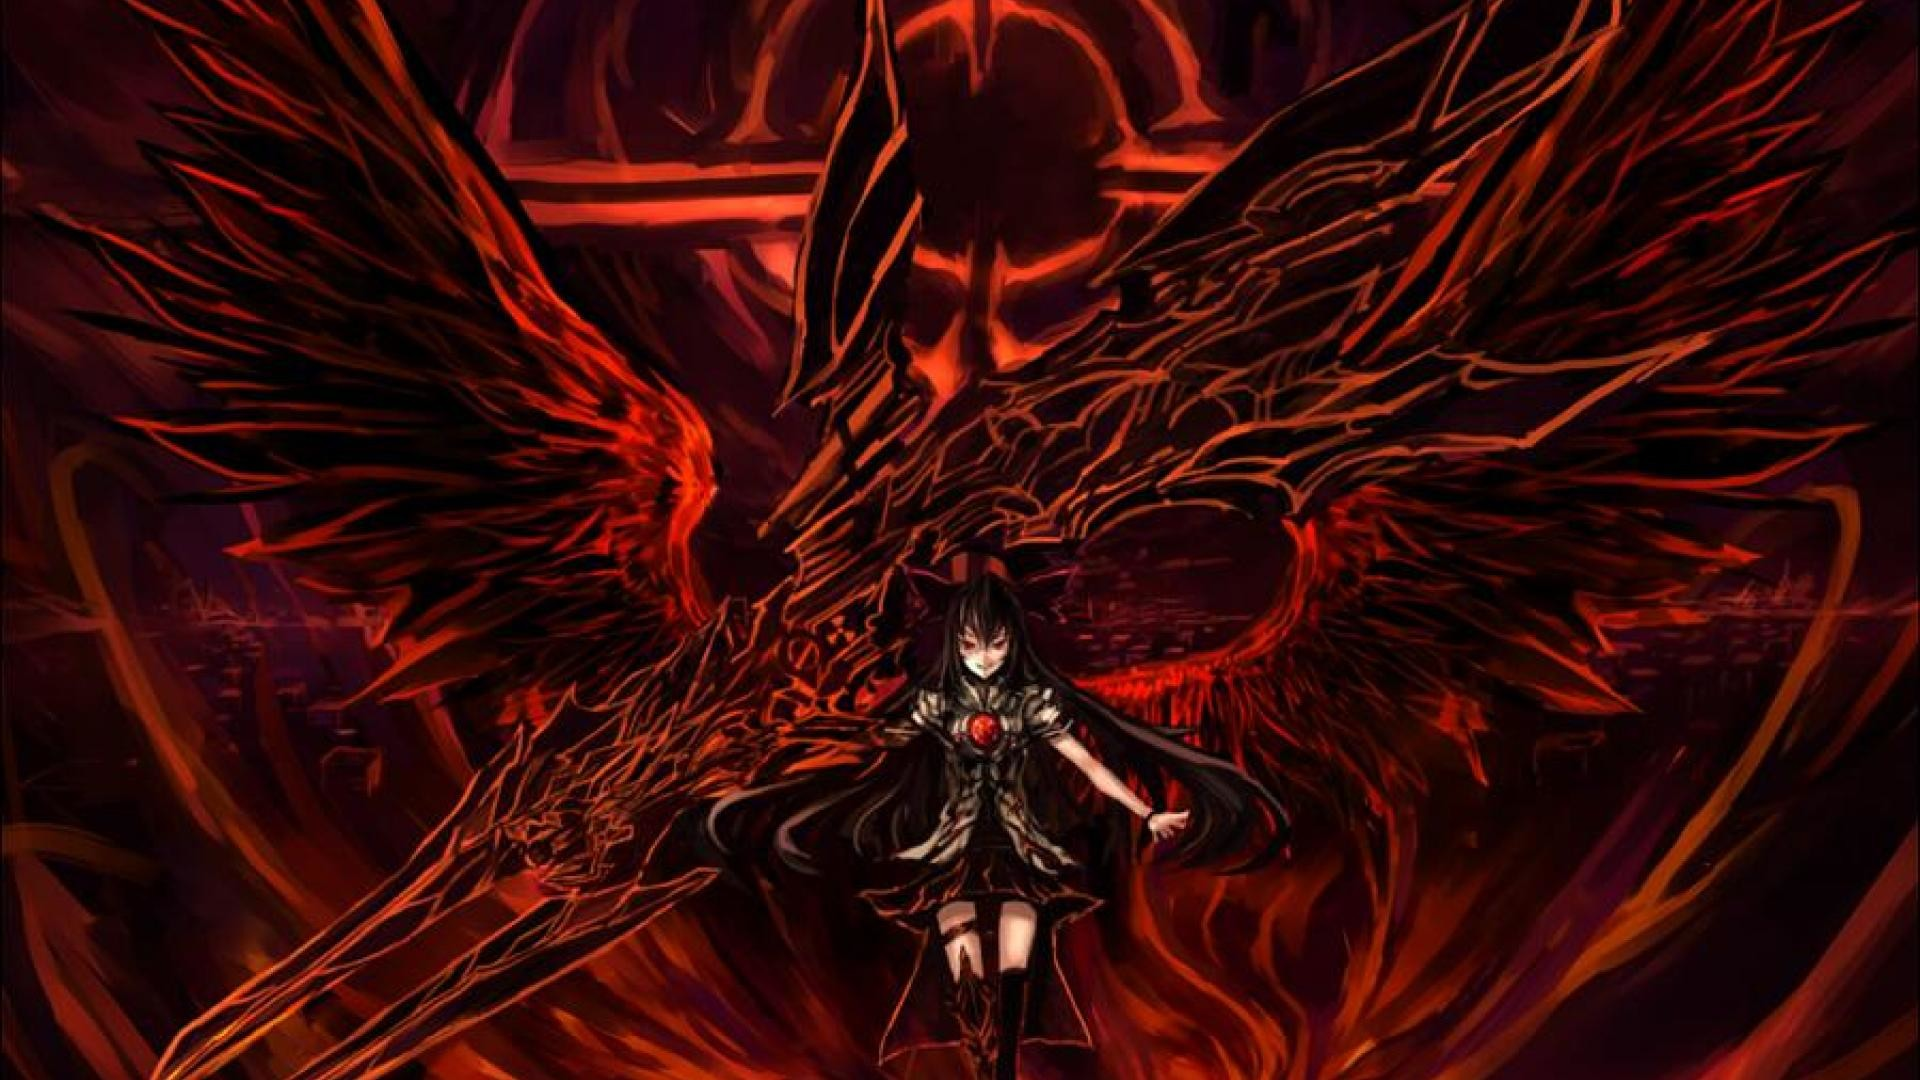 1920x1080 Badass Utsuho Wallpaper